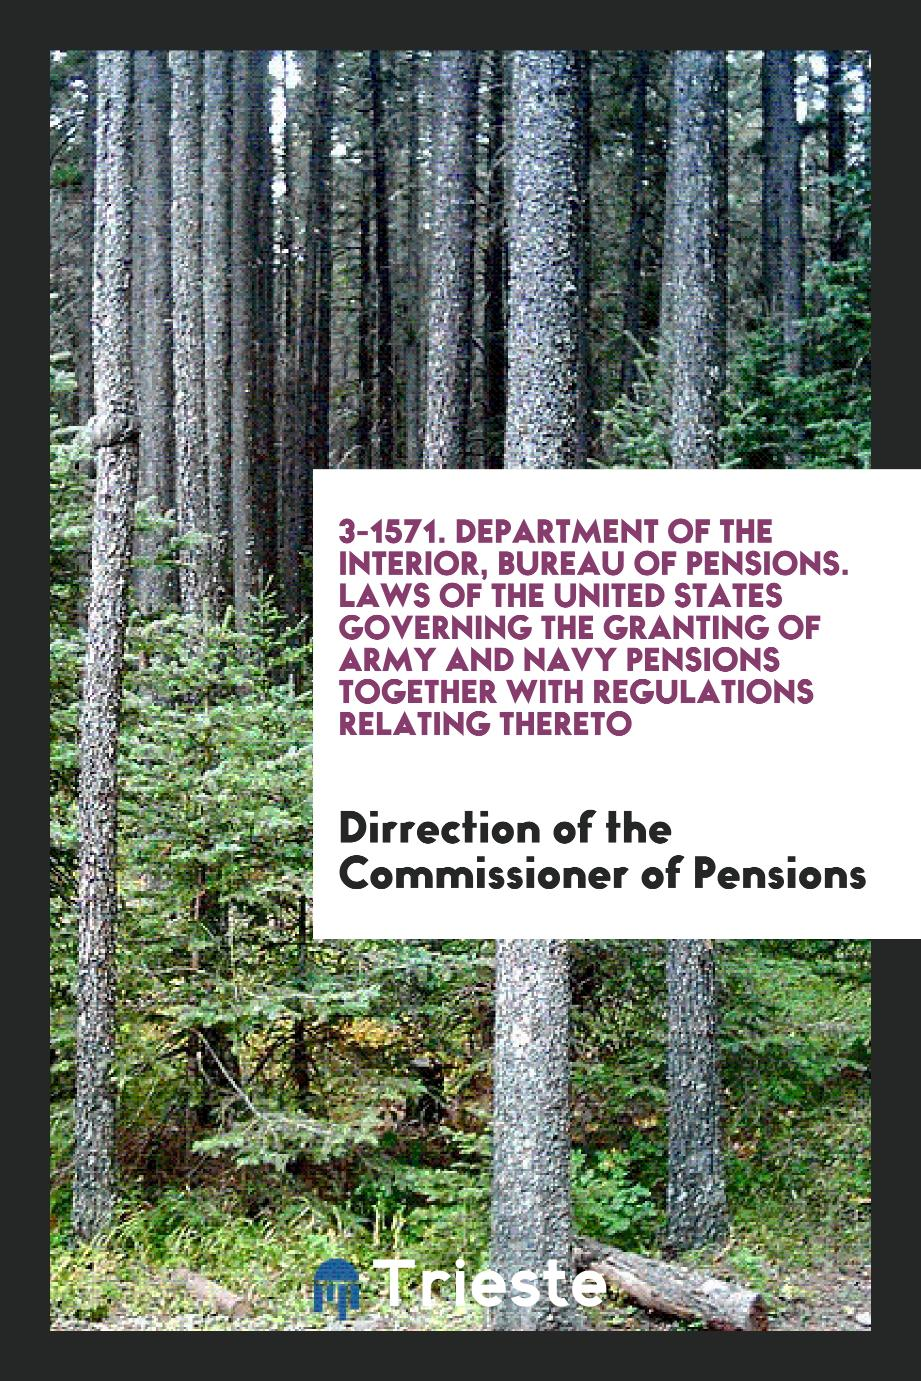 3-1571. Department of the Interior, Bureau of Pensions. Laws of the United States Governing the Granting of Army and Navy Pensions Together with Regulations Relating Thereto